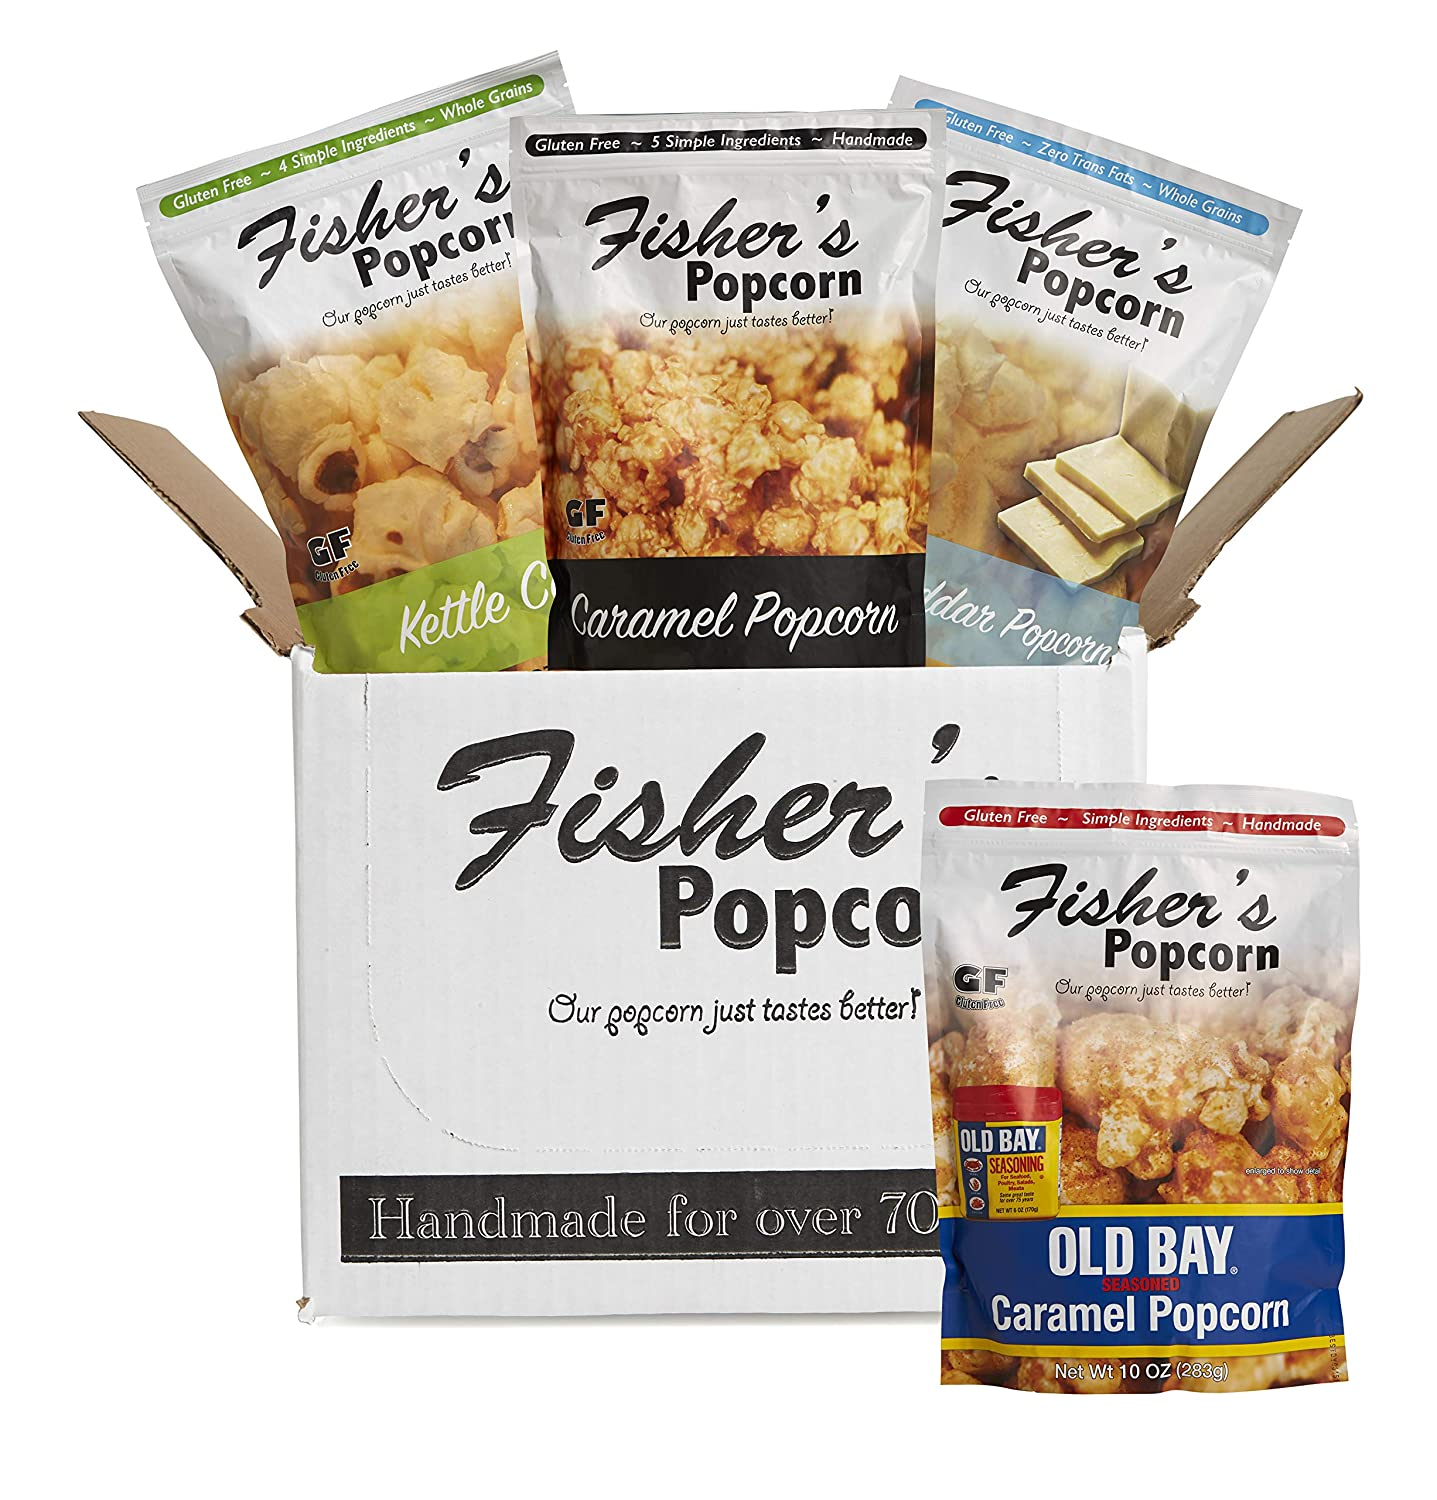 Fisher's Popcorn 4 Bag Flavor Variety Pack, Gluten Free, Simple Ingredients, Zero Trans Fat, 3oz-10oz Bags (Pack of 4)